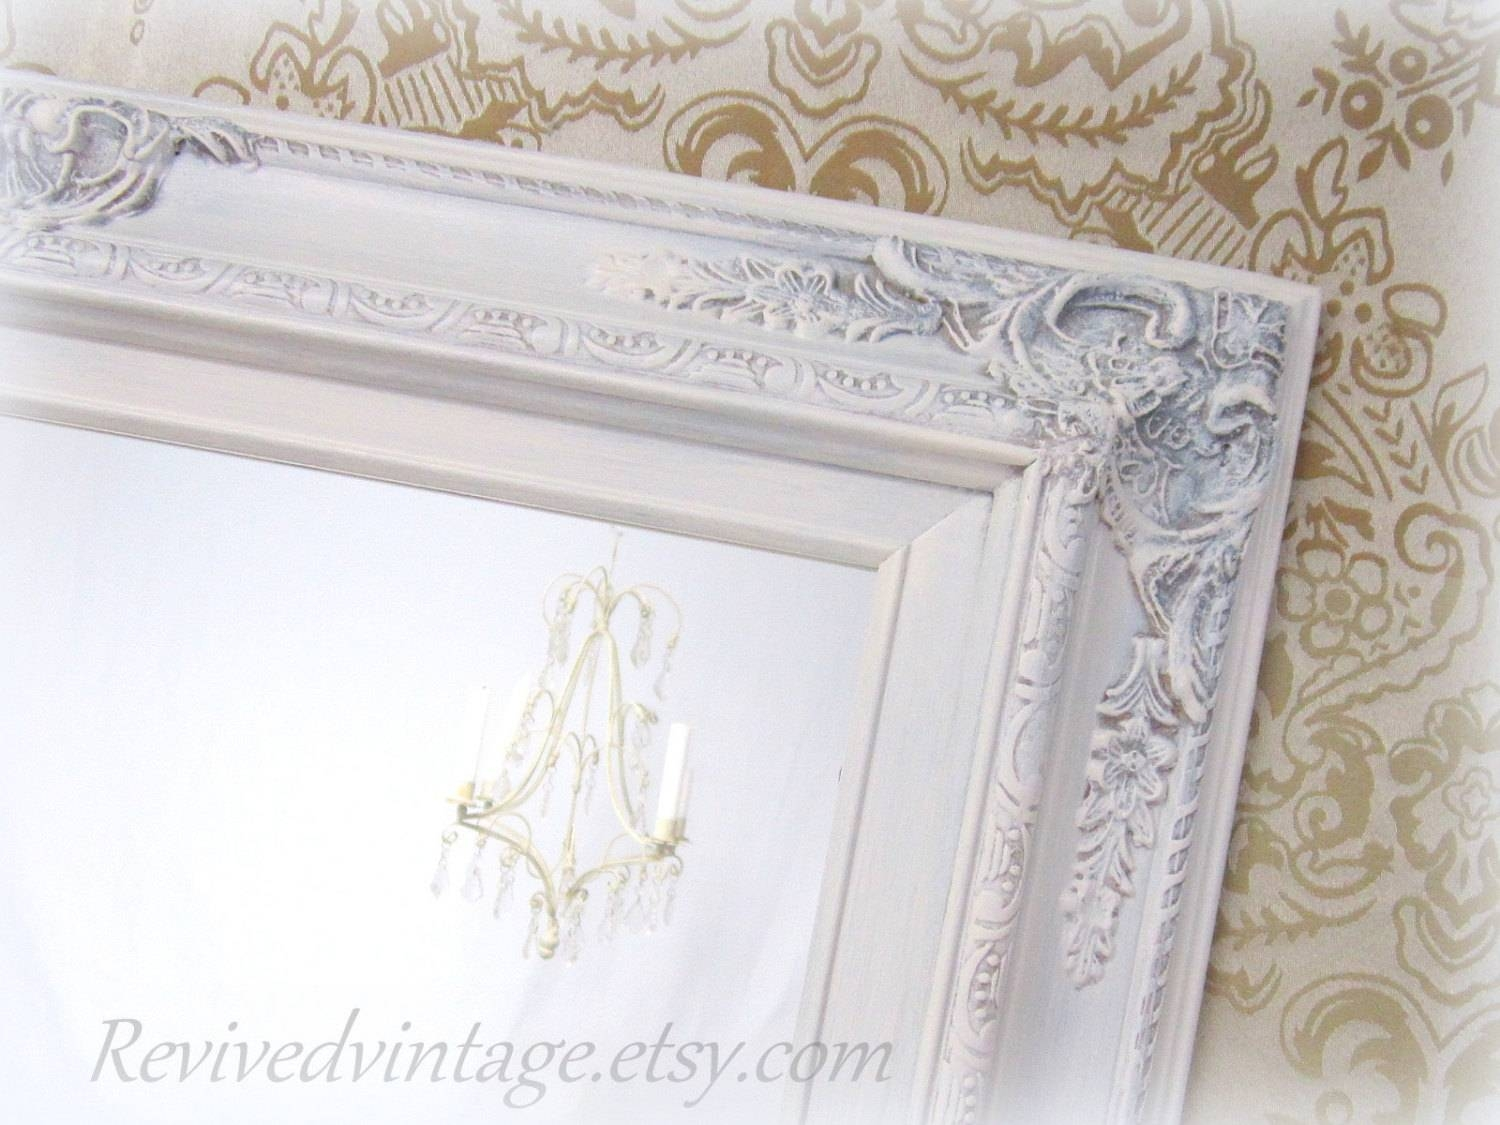 Shabby Chic Mirrors For Sale Baroque Framed Mirror inside Large Baroque Mirrors (Image 24 of 25)